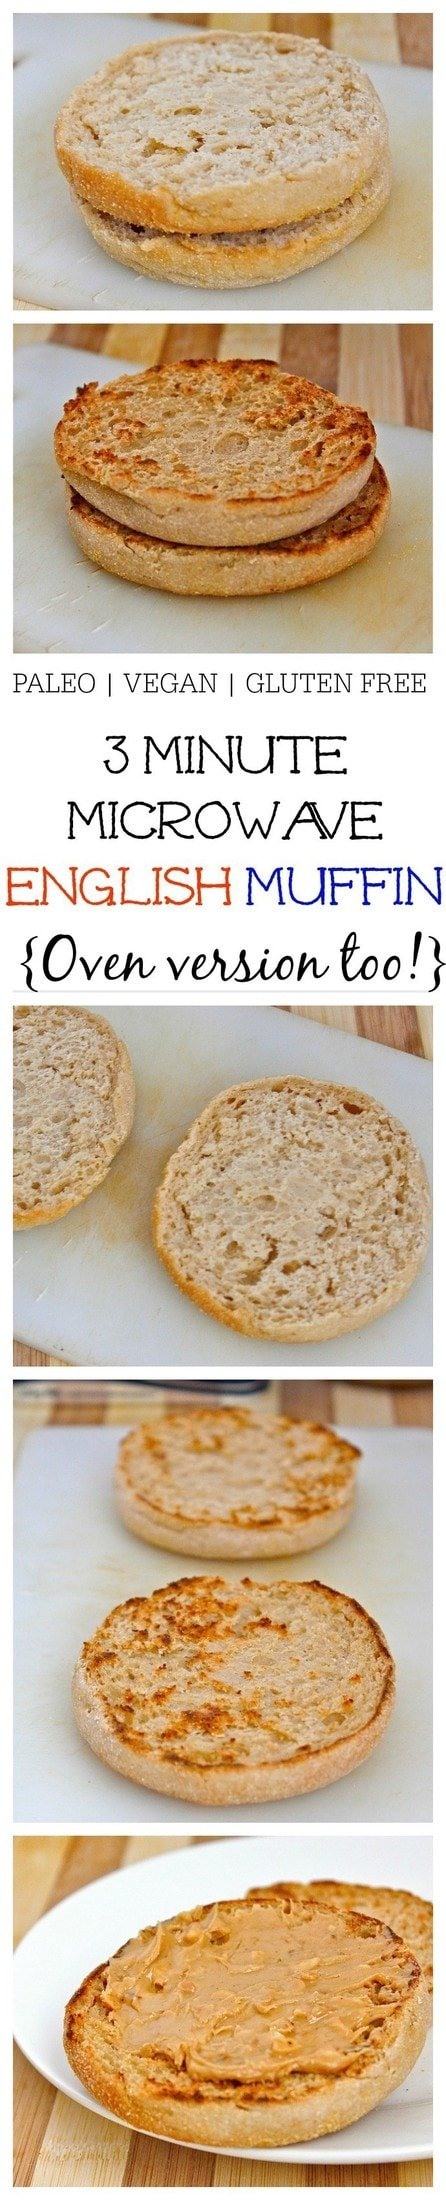 Microwave english muffin paleo gluten free vegan healthy 3 minute microwave english muffin made with no flour no oil no butter forumfinder Images